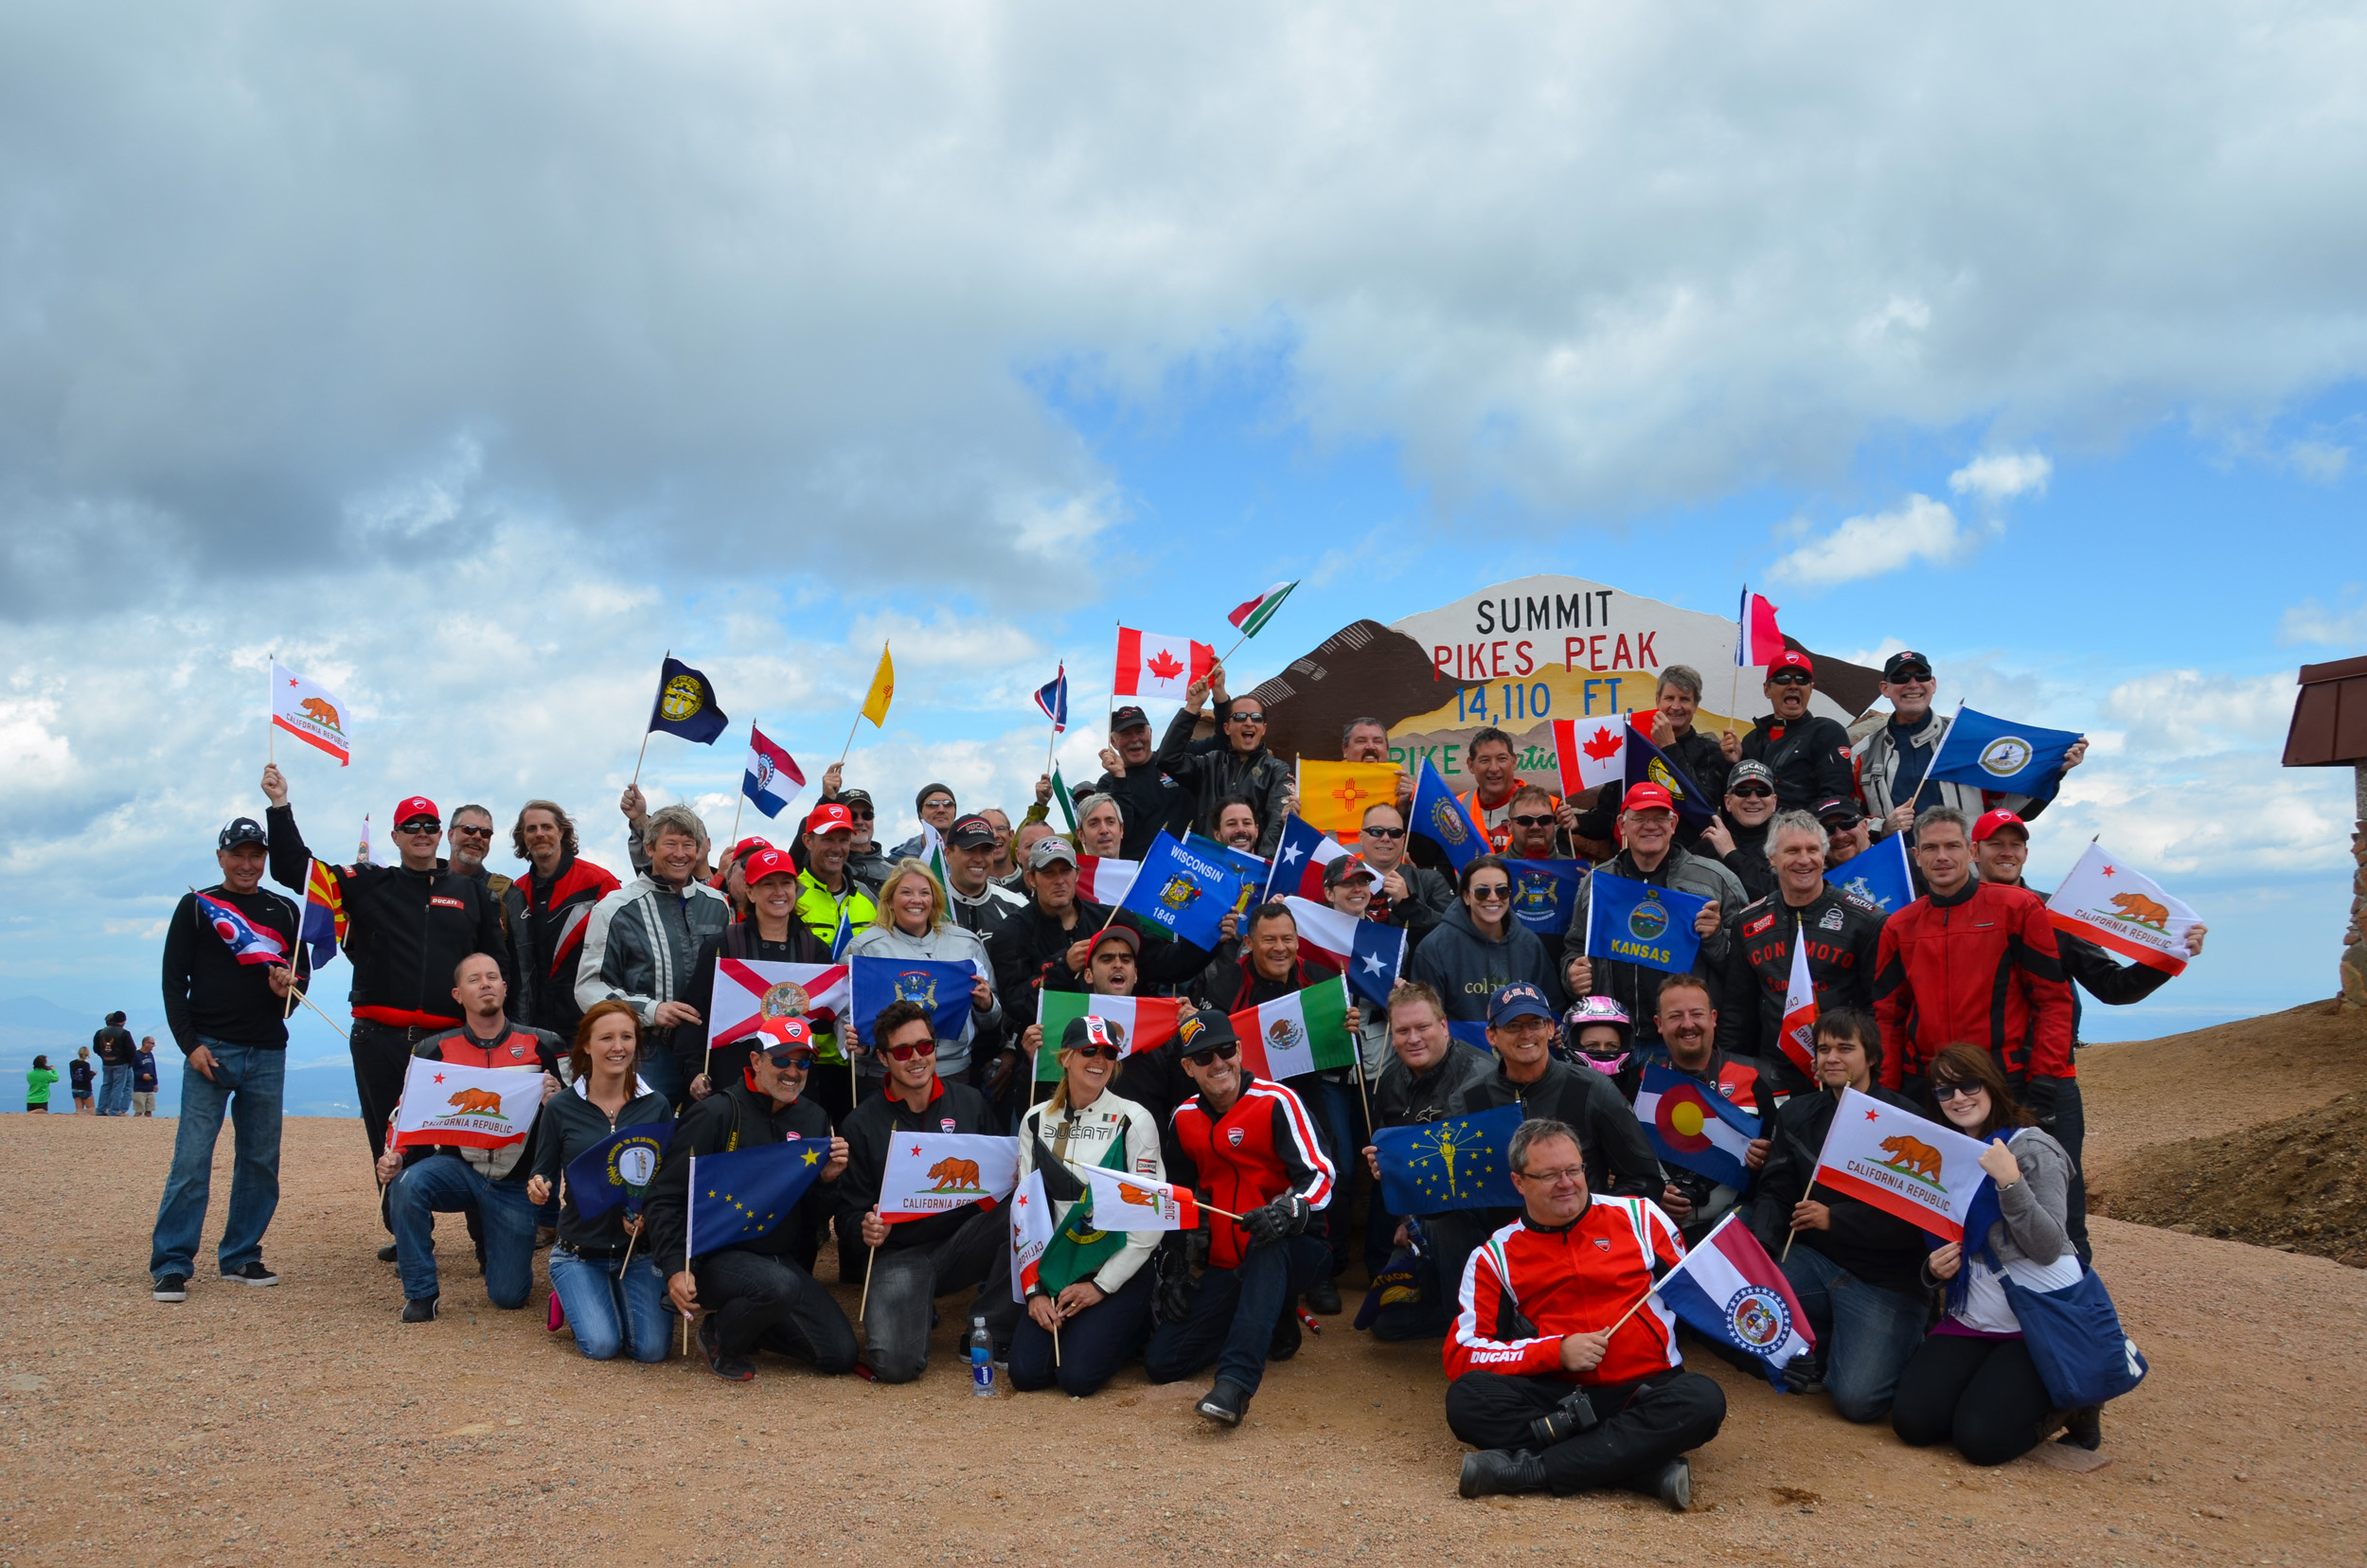 Fans Gather at Pikes Peak Summit